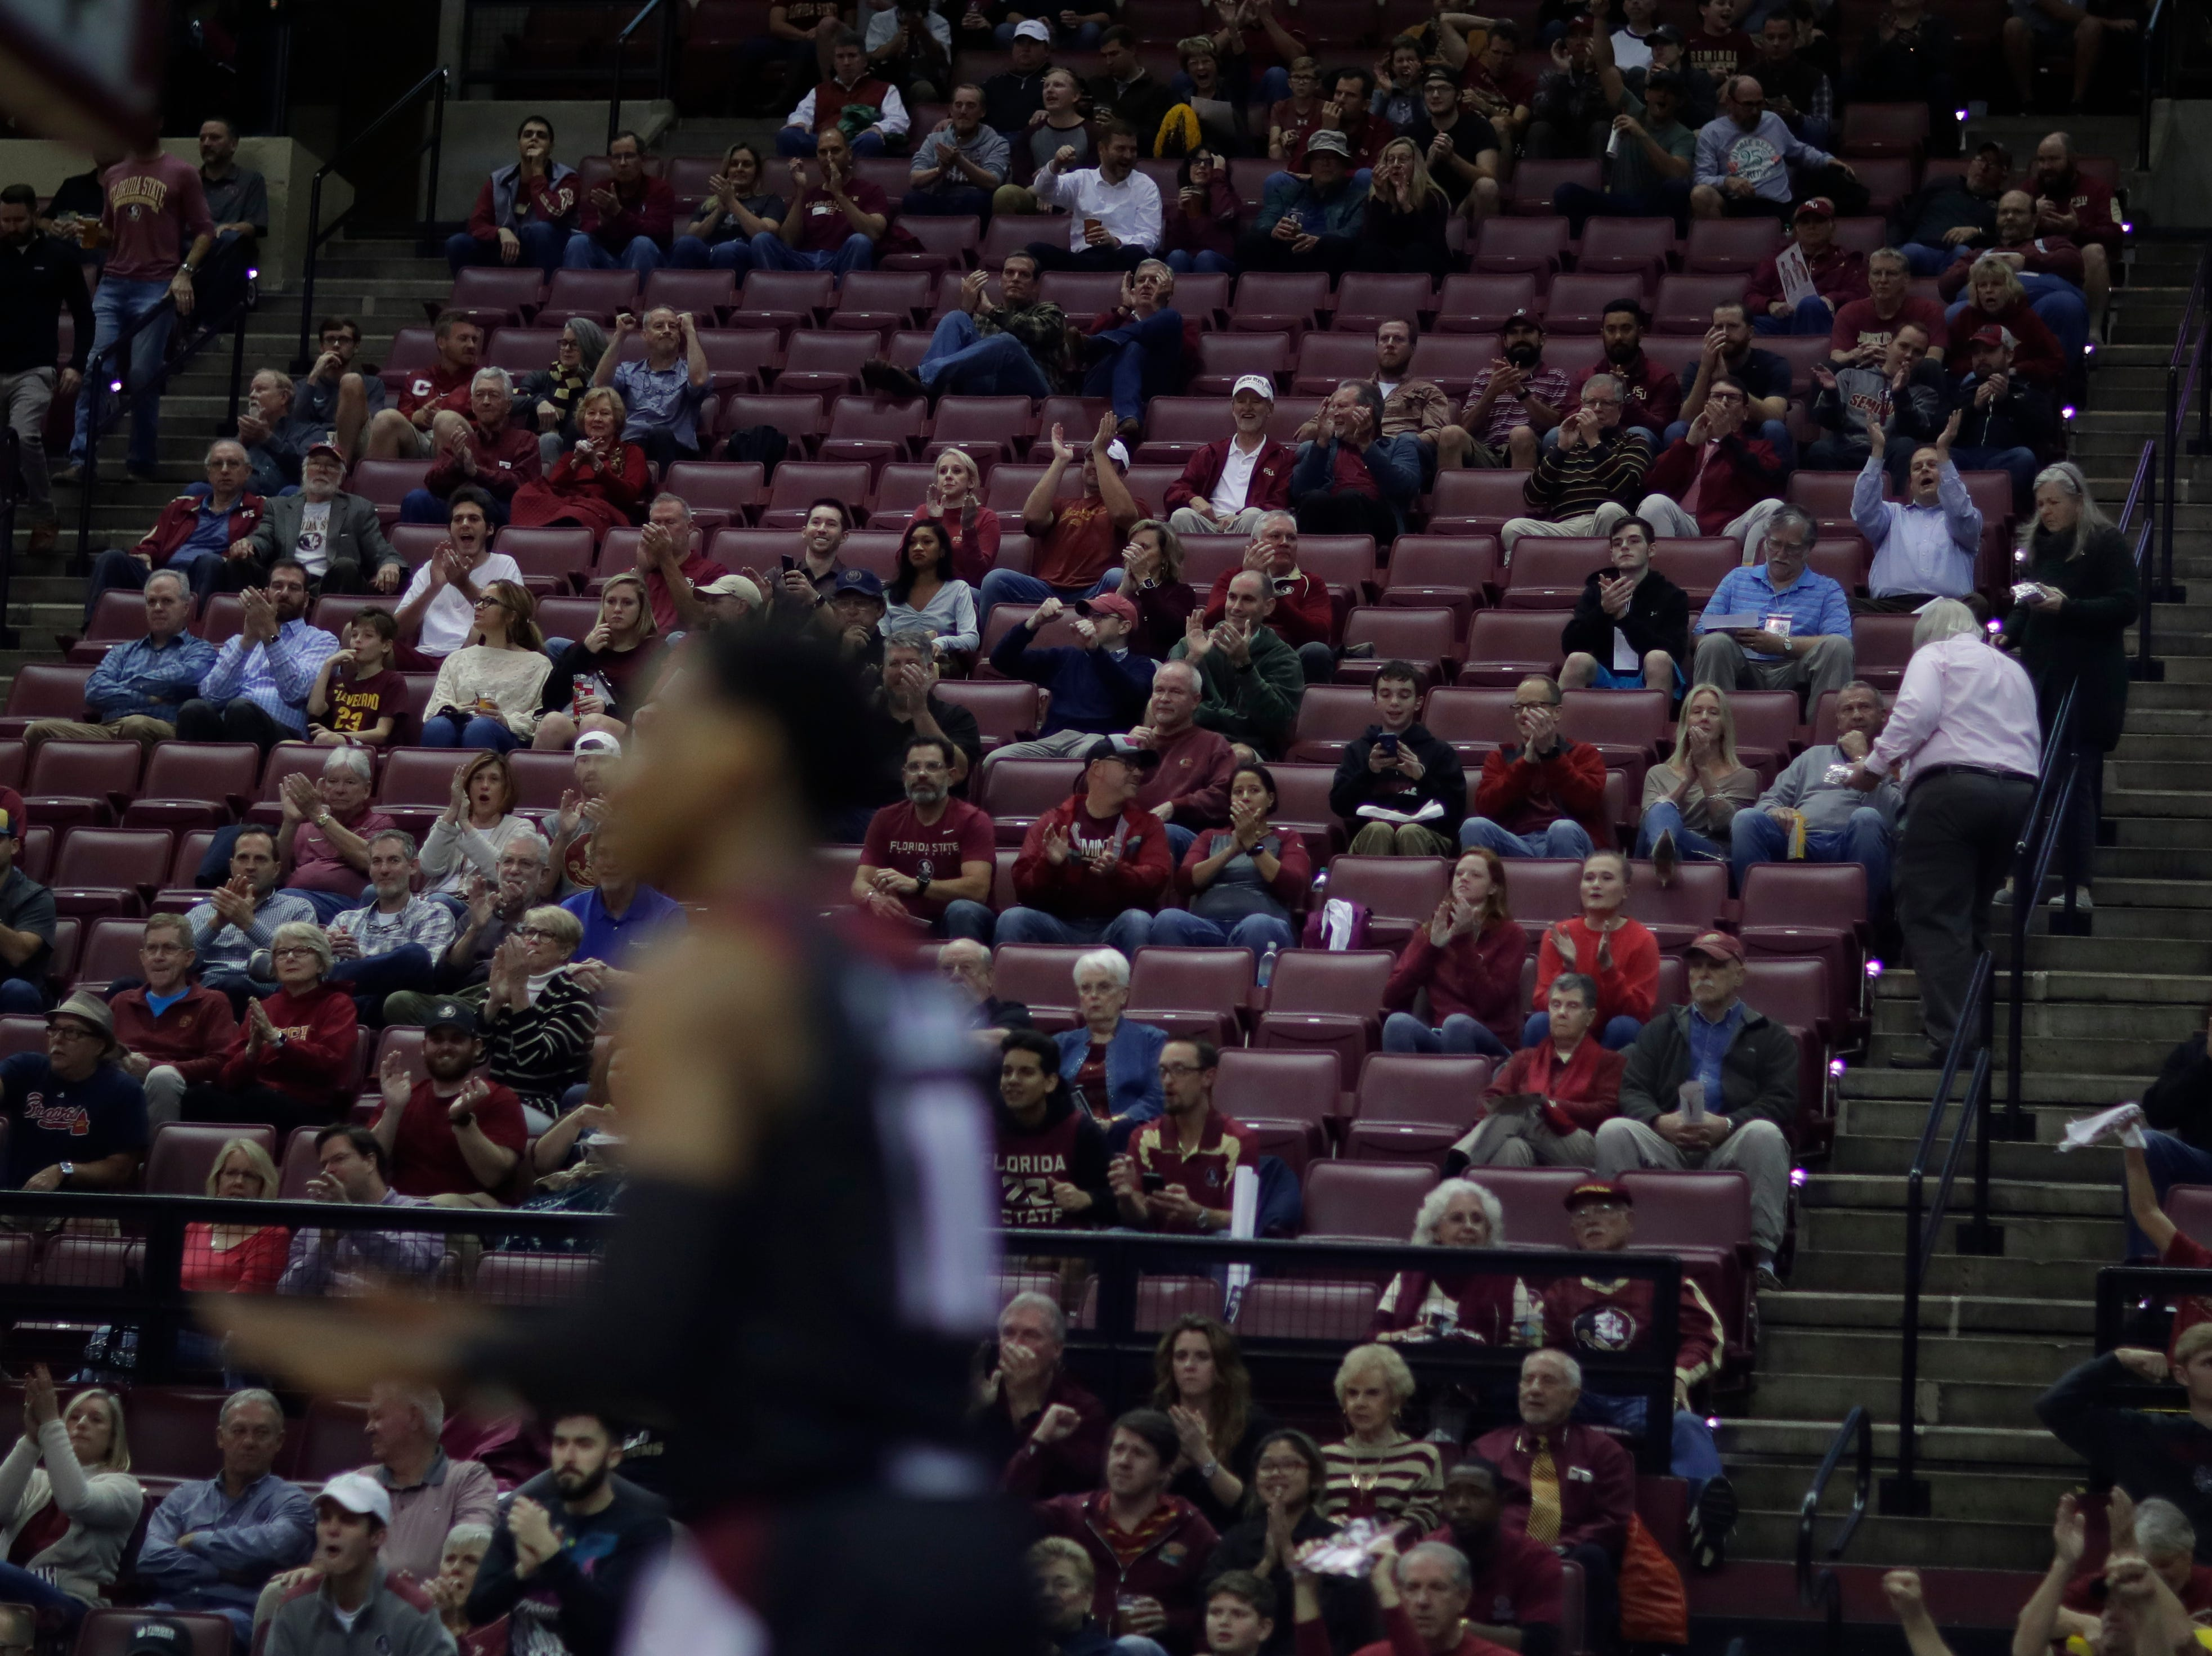 Fans cheer after the Seminoles score during a game between FSU and Troy University at Donald L. Tucker Civic Center Monday, Dec. 3, 2018.